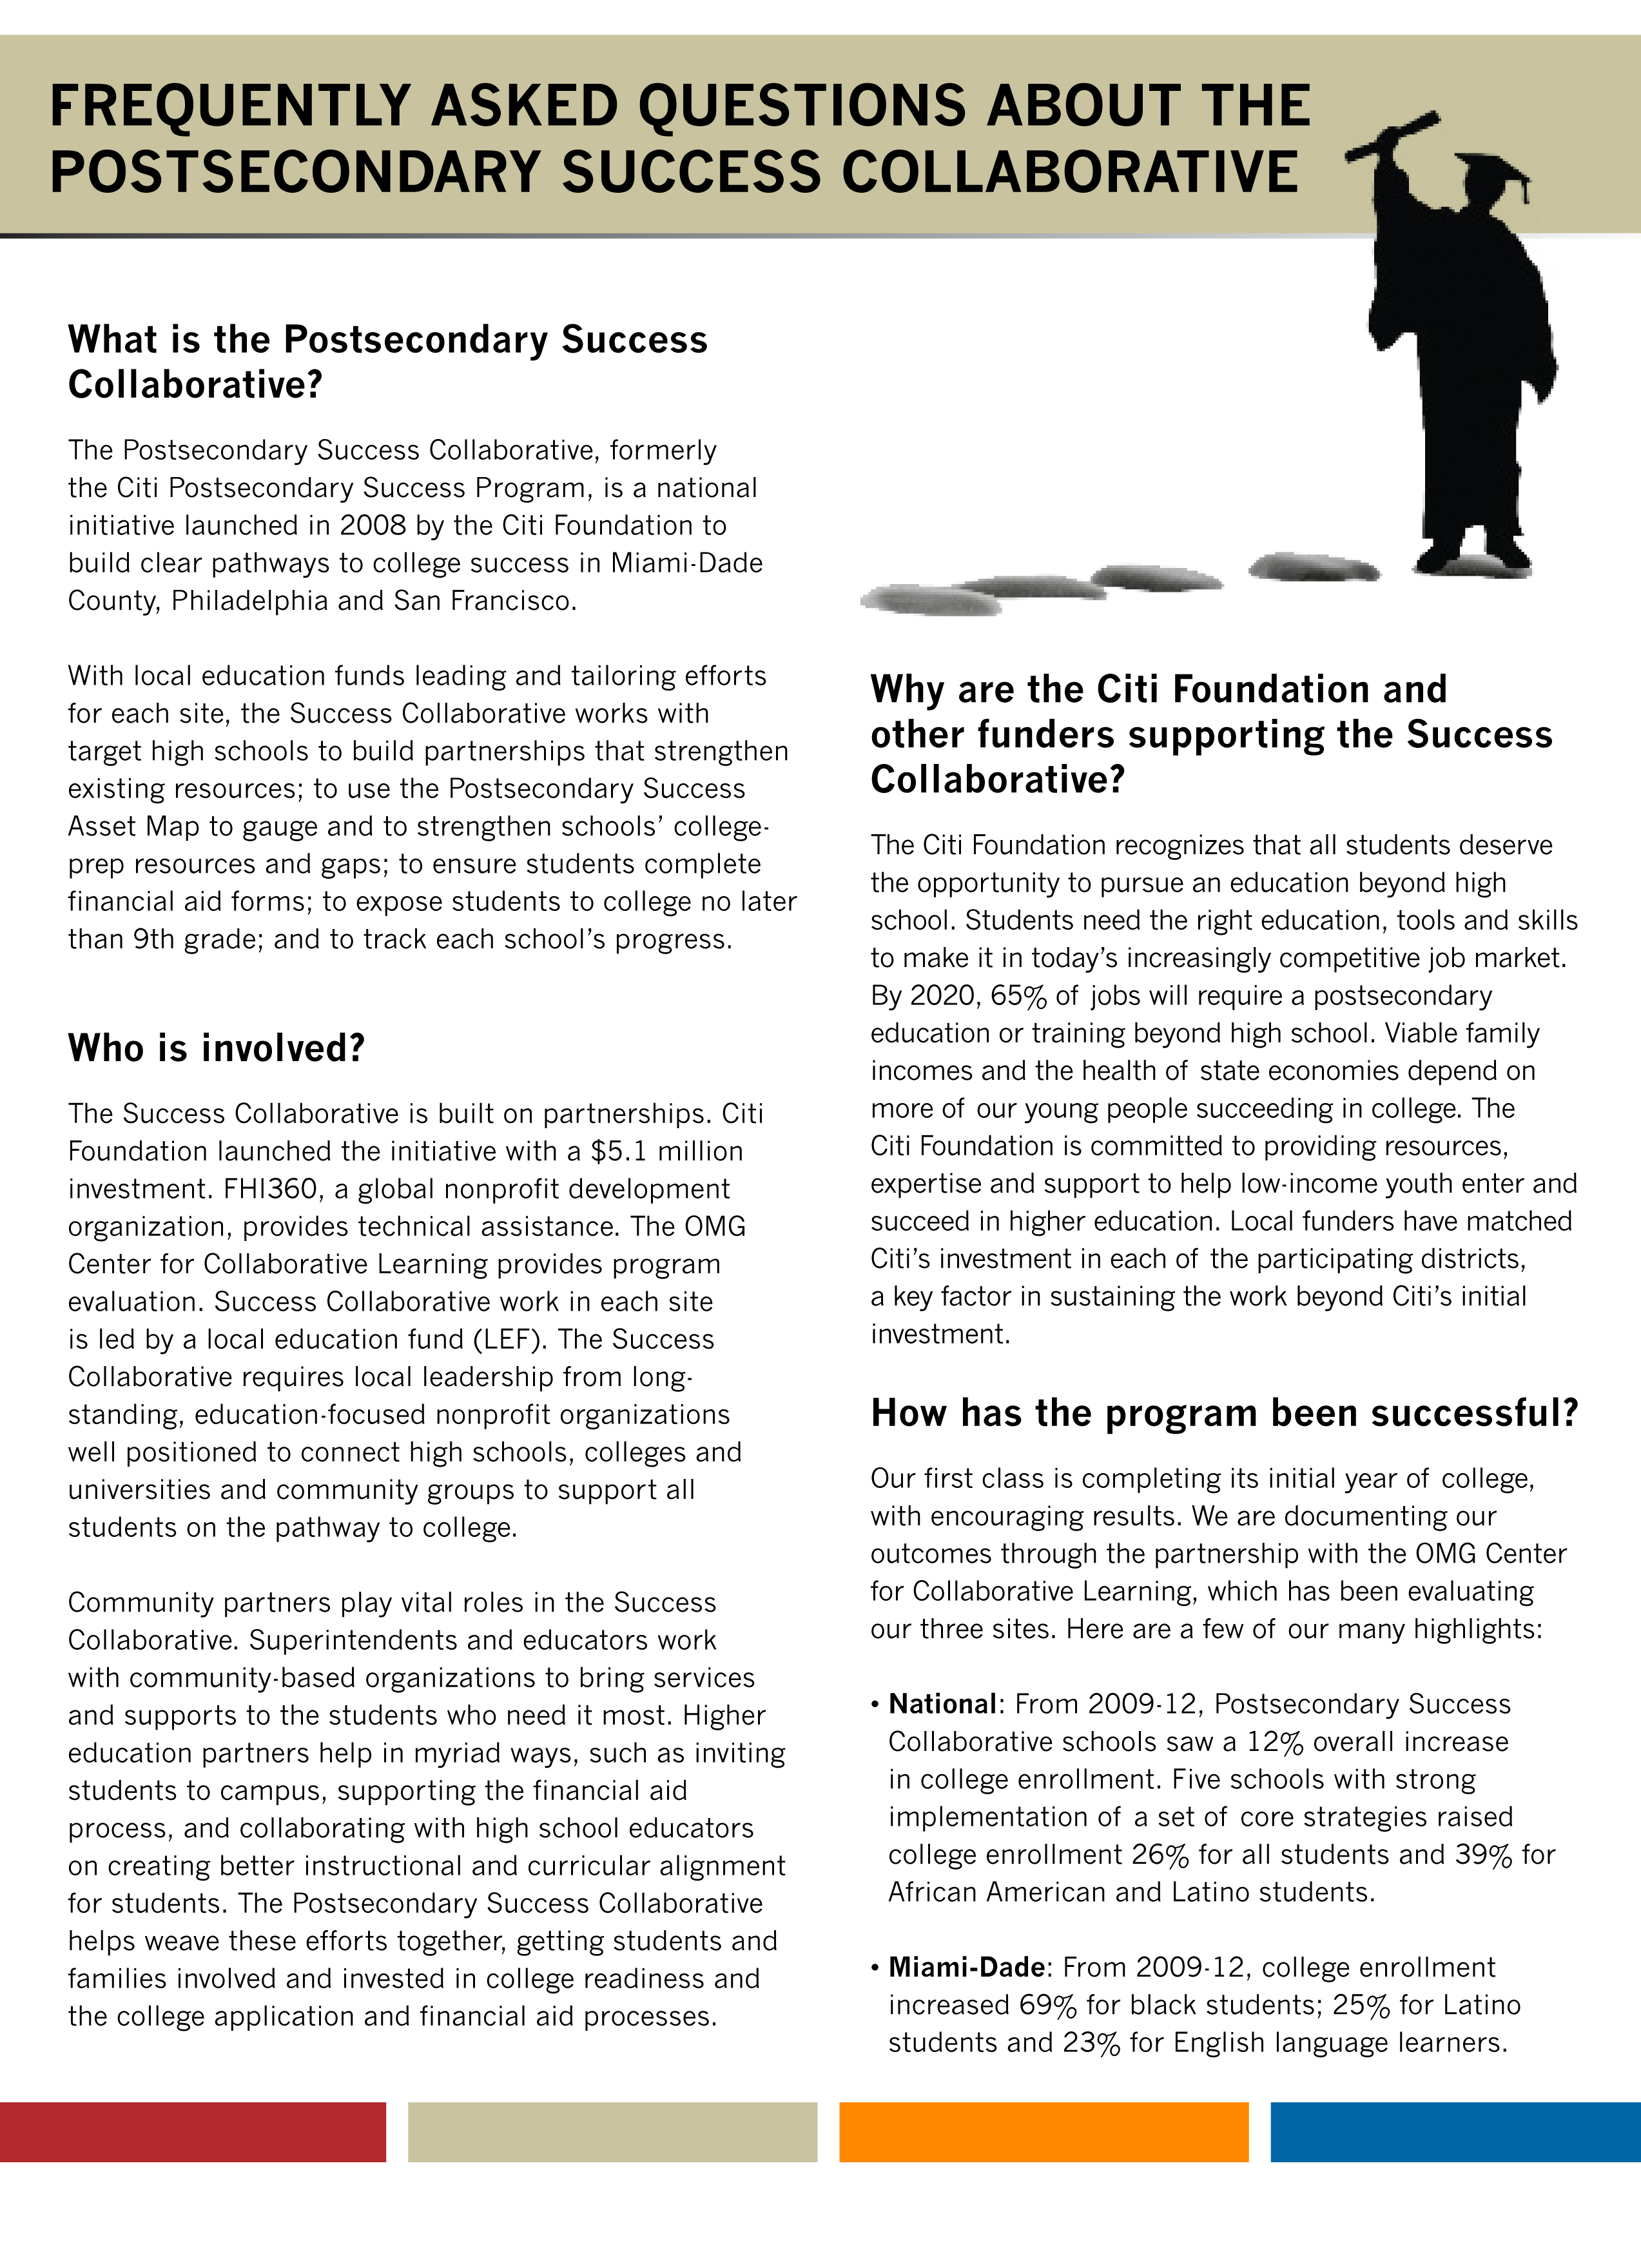 Frequently Asked Questions About the Postsecondary Success Collaborative